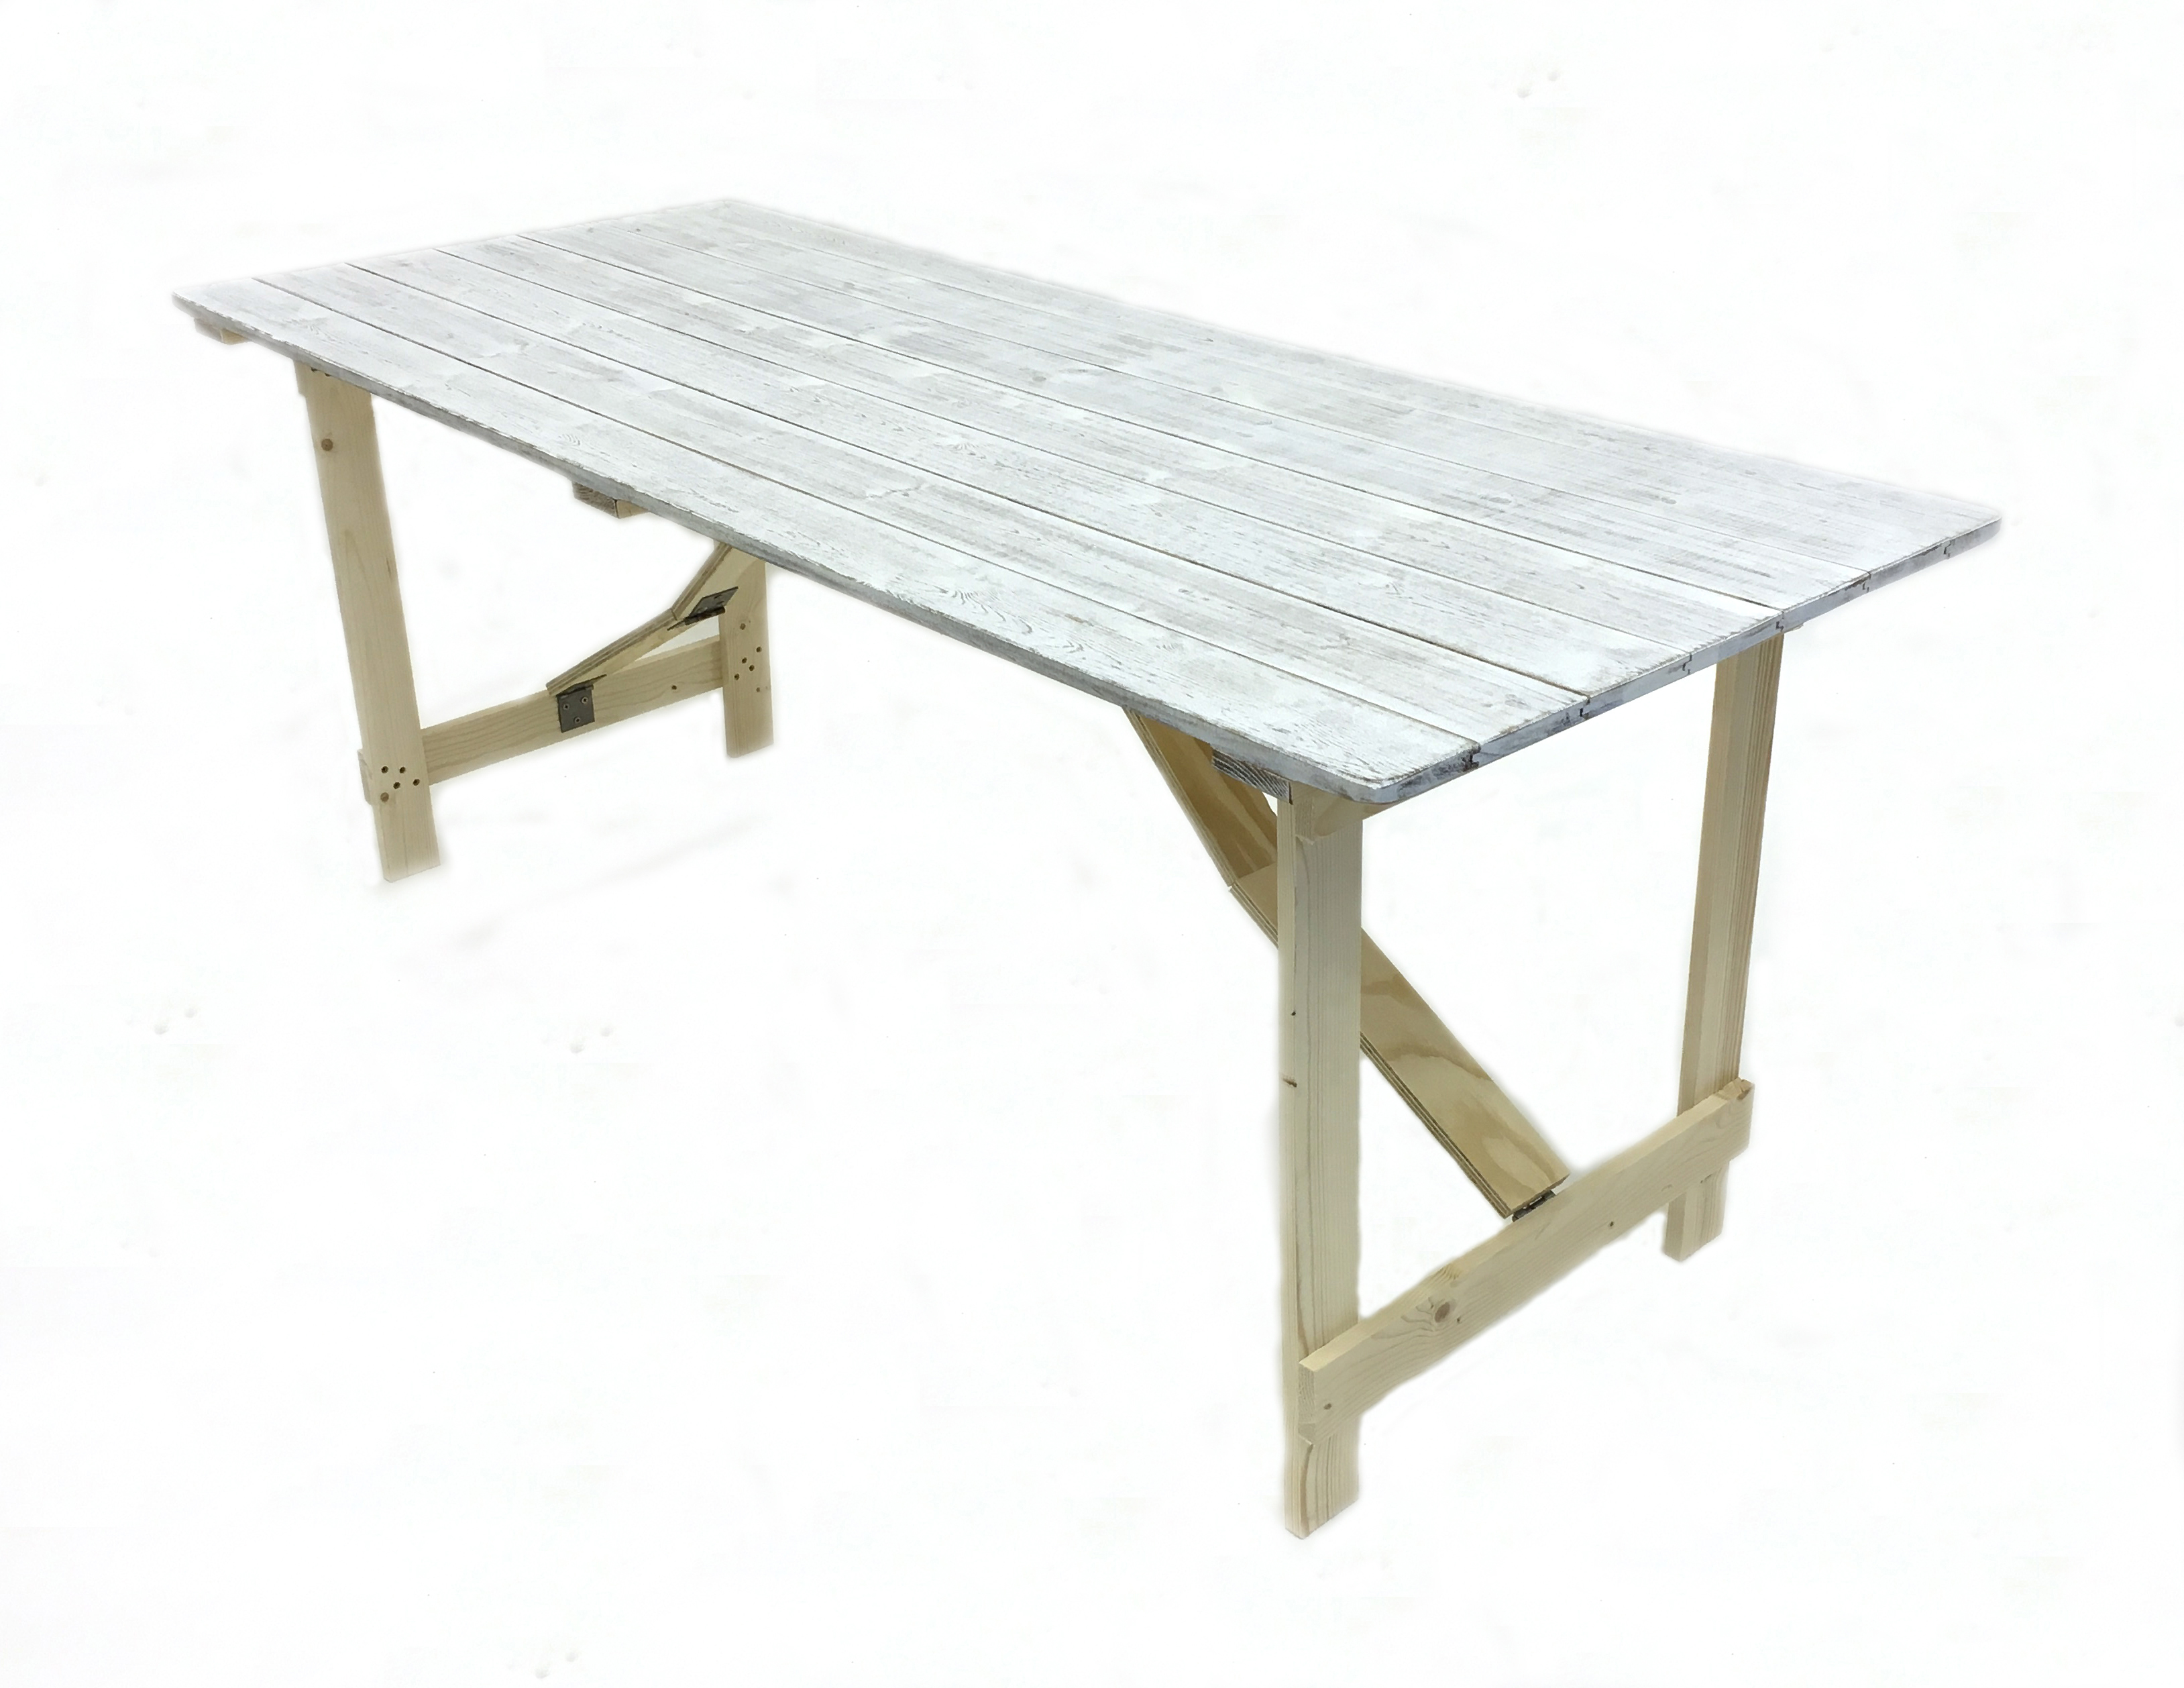 6x 26 limewash style distressed table